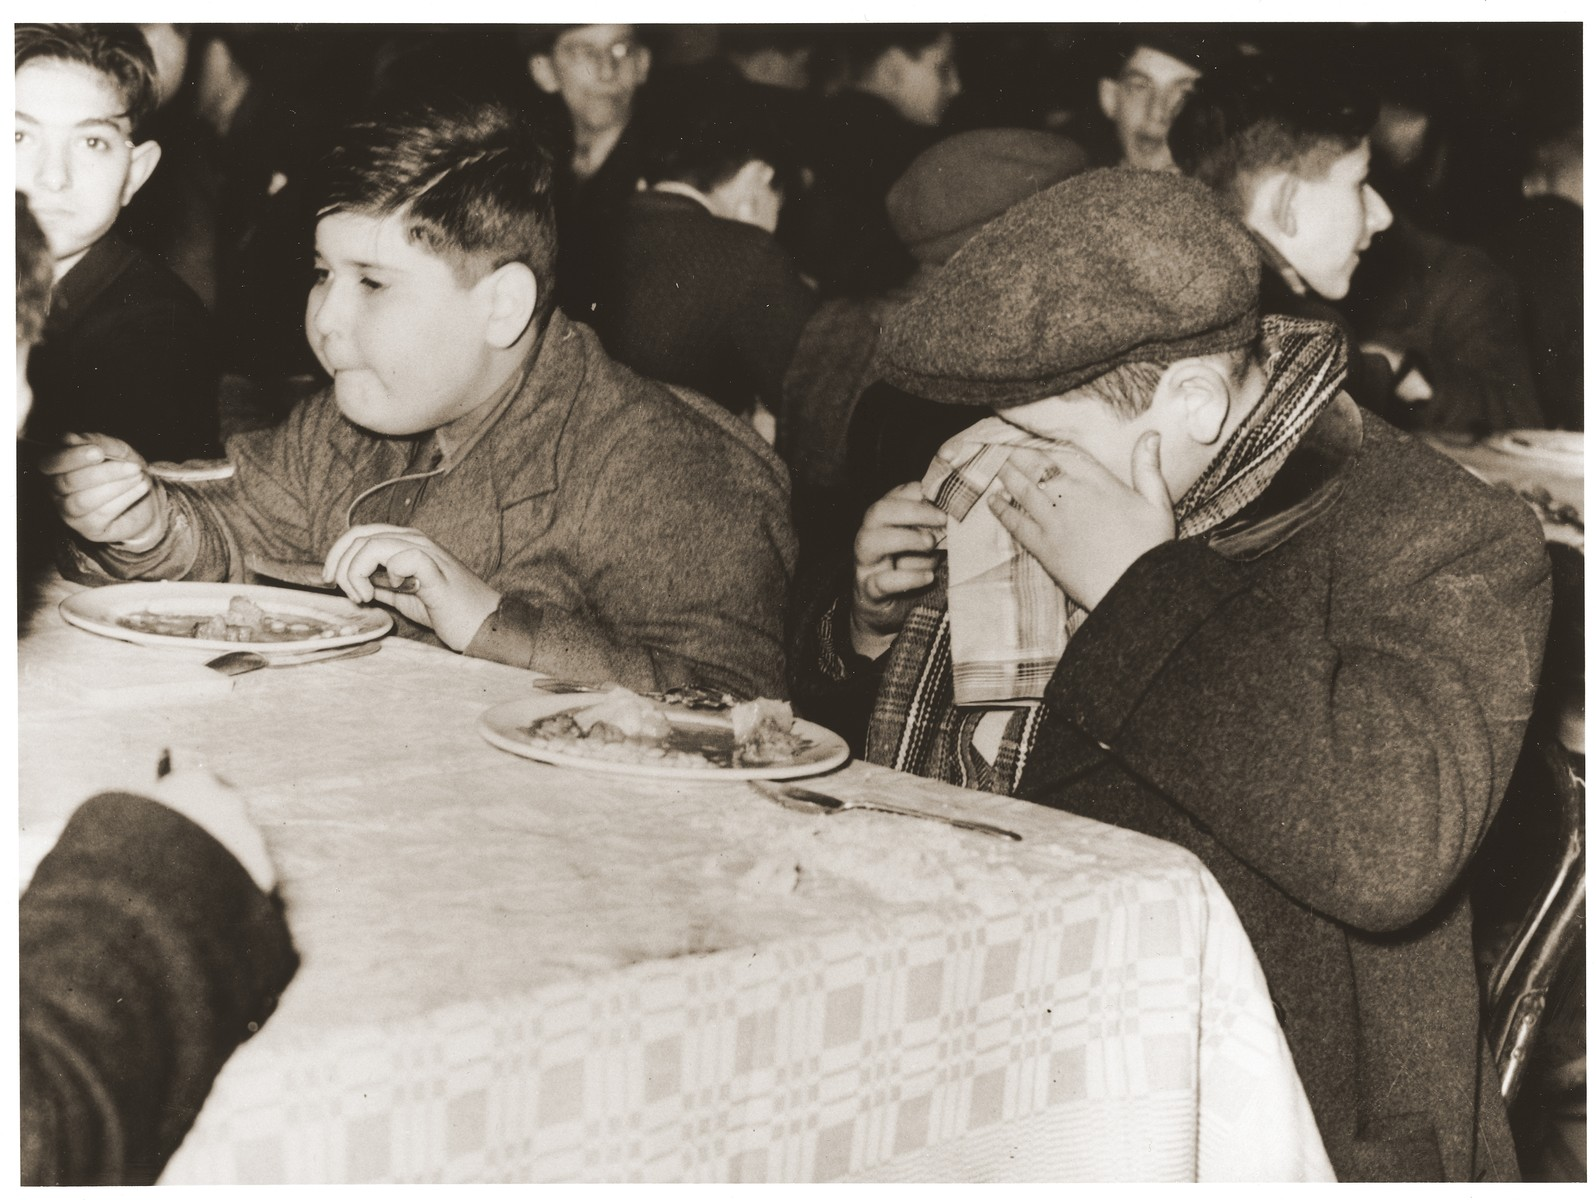 Austrian refugee children who arrived in England with the second Kindertransport, eat a meal at the Pakefield holiday camp in Suffolk.